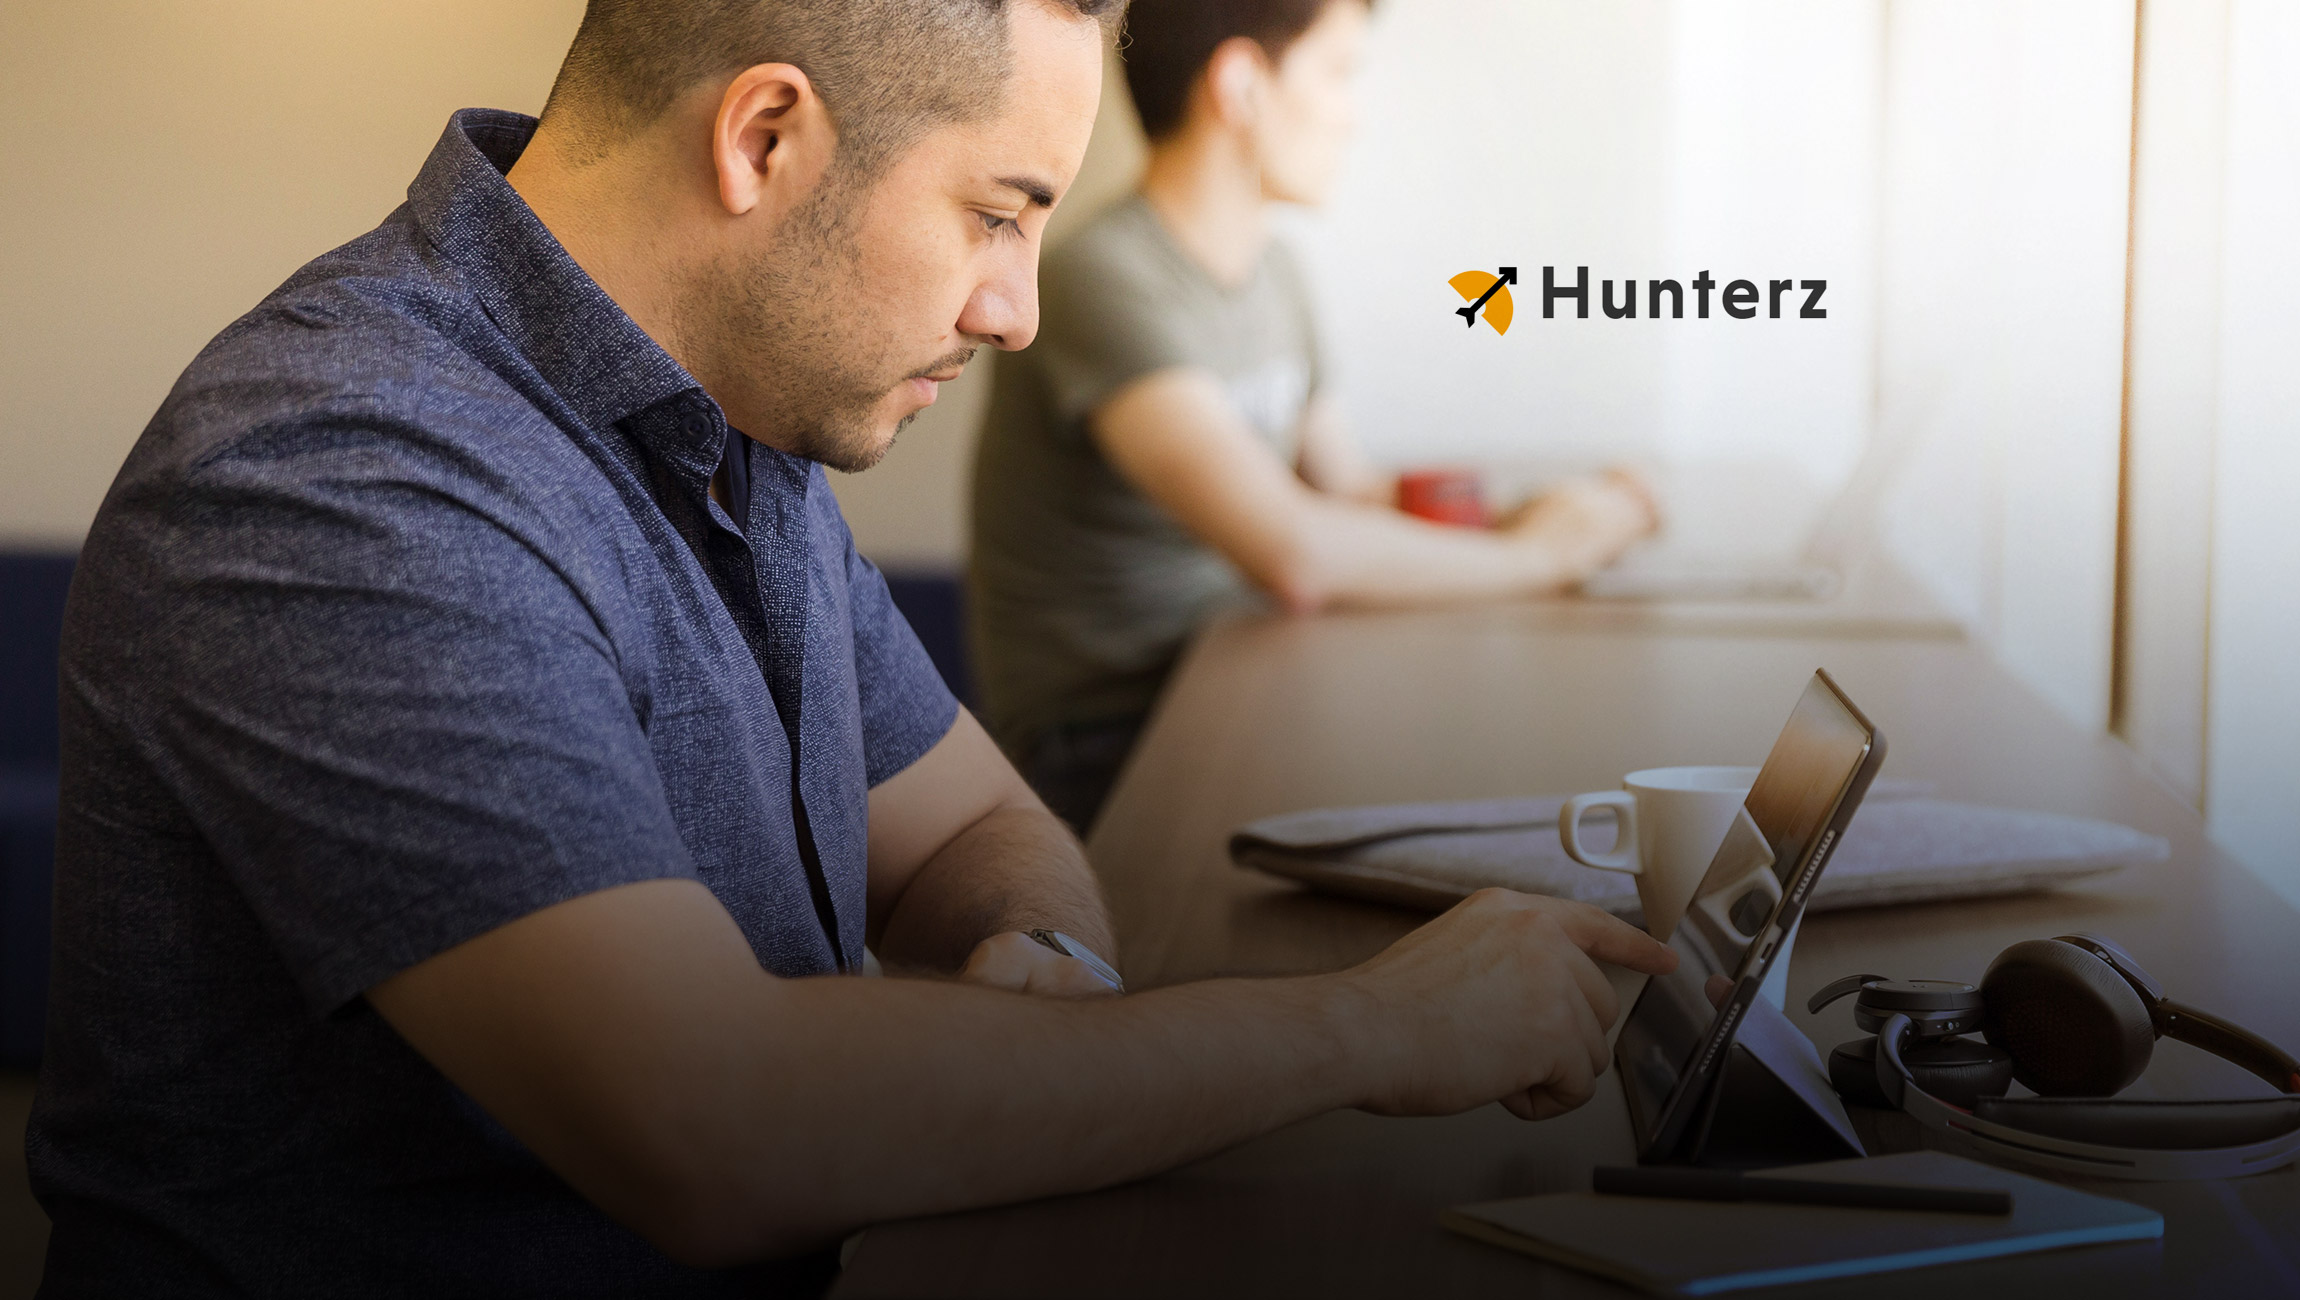 """Hunterz.io Releases """"Hunterz for Teamz"""", Their Enterprise Solution for Sales Teams of All Sizes"""